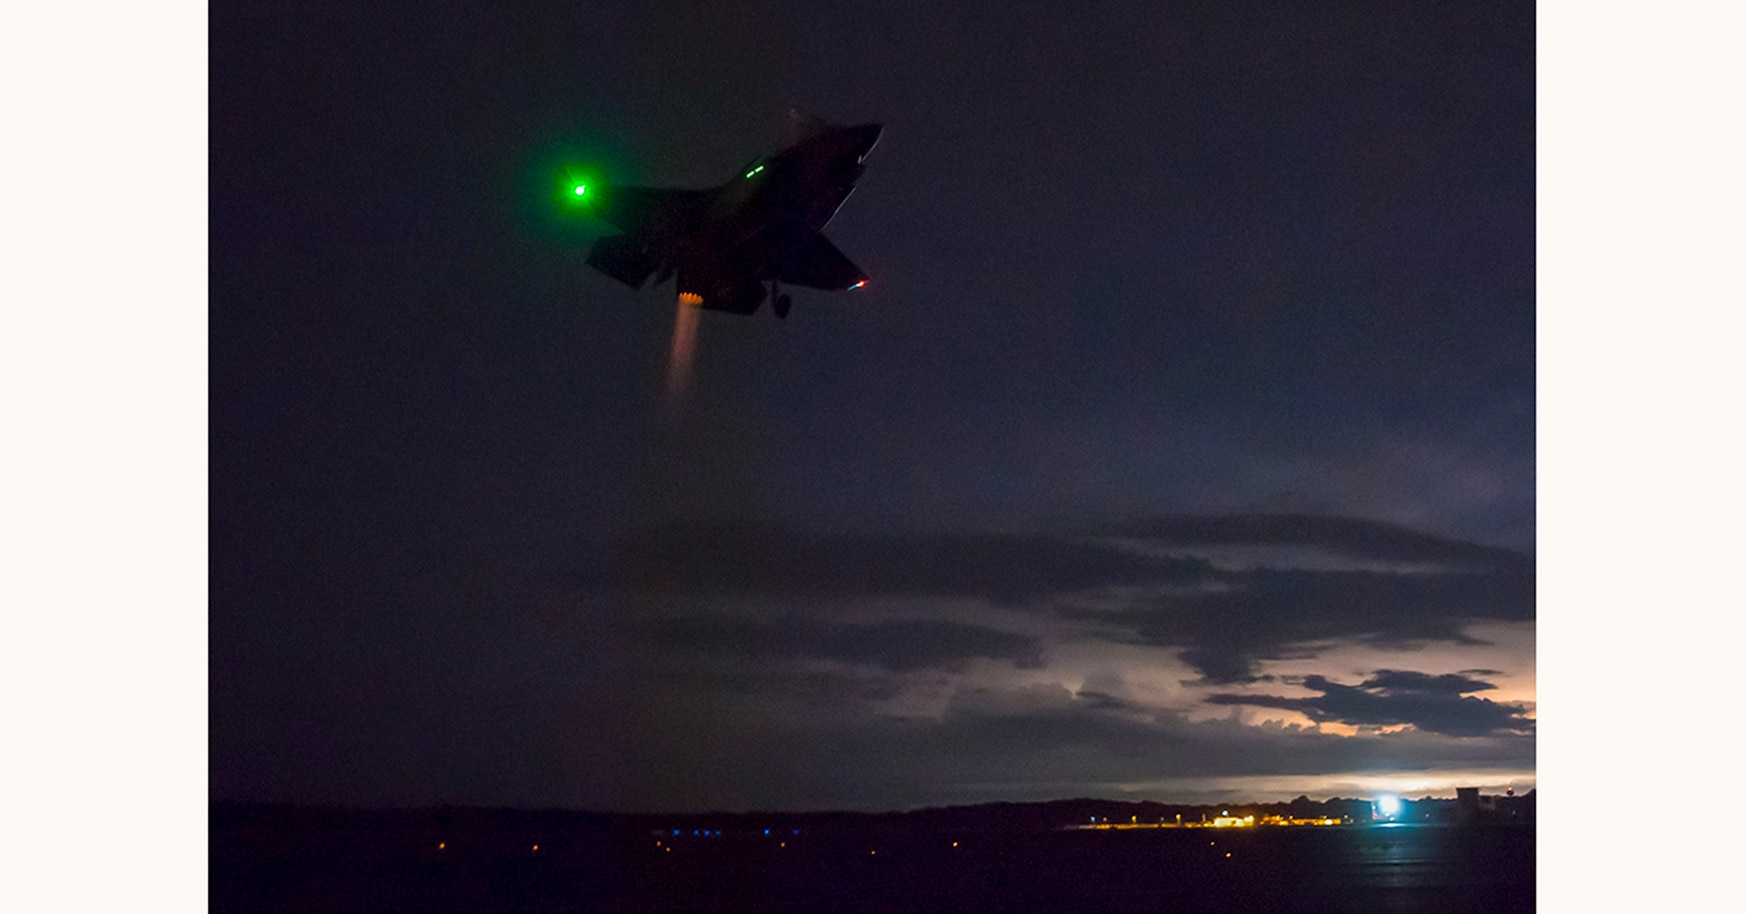 U.S. Marine Corps Maj. Michael Lippert and Peter Wilson, F-35 test pilots with the Patuxent River Integrated Test Force, conduct night field carrier landing practices Aug. 30, 2018, at Naval Air Station Patuxent River, Md. (Dane Wiedmann/F-35 Lightning II Pax River ITF)